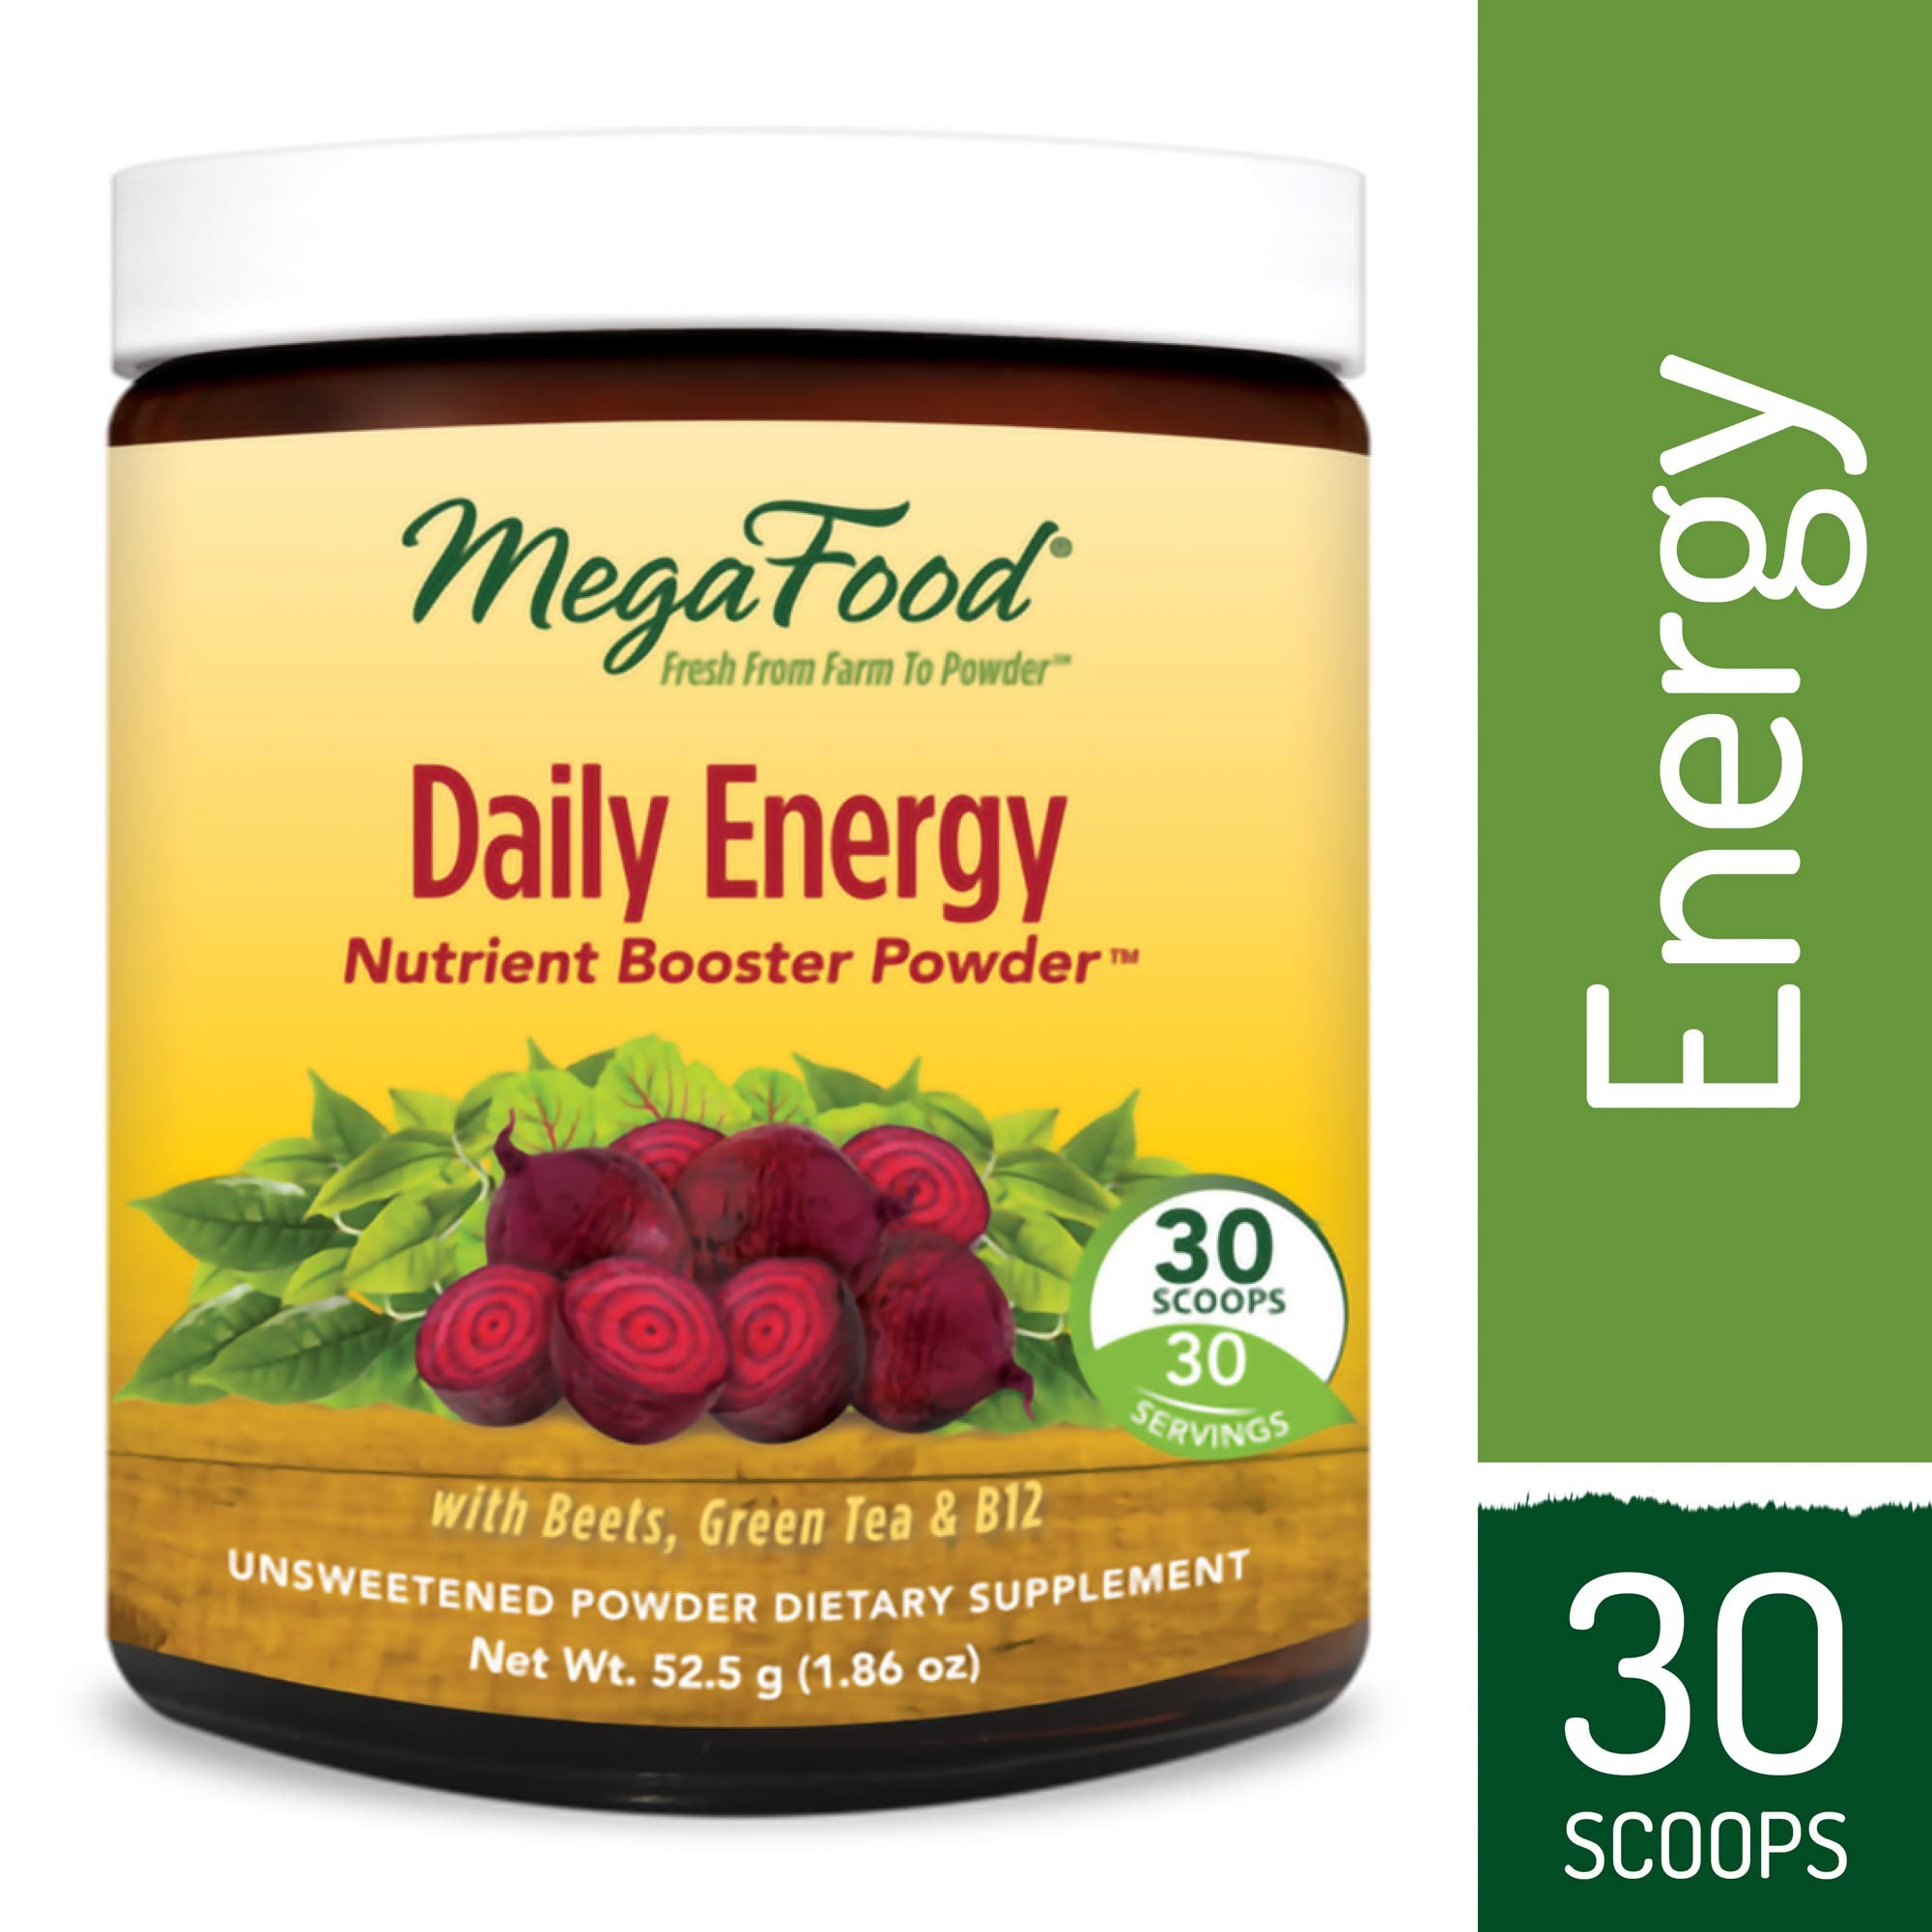 MegaFood - Daily Energy Booster Powder, Promotes Energy, Endurance, Metabolism, and Stress